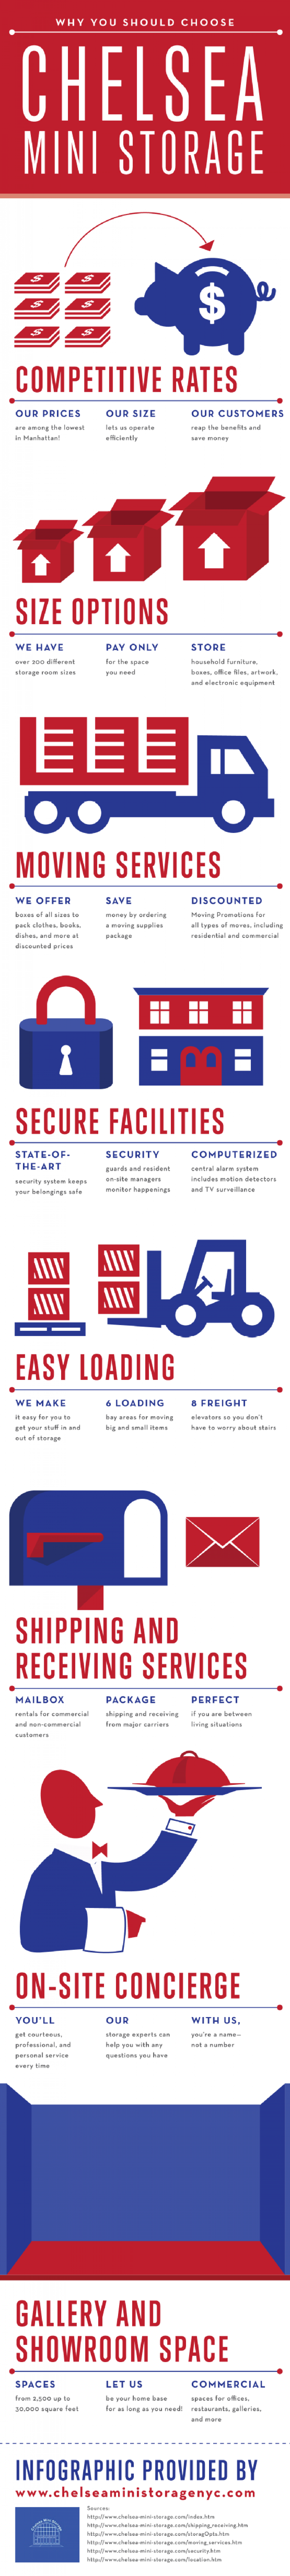 Why You Should Choose Chelsea Mini Storage  Infographic